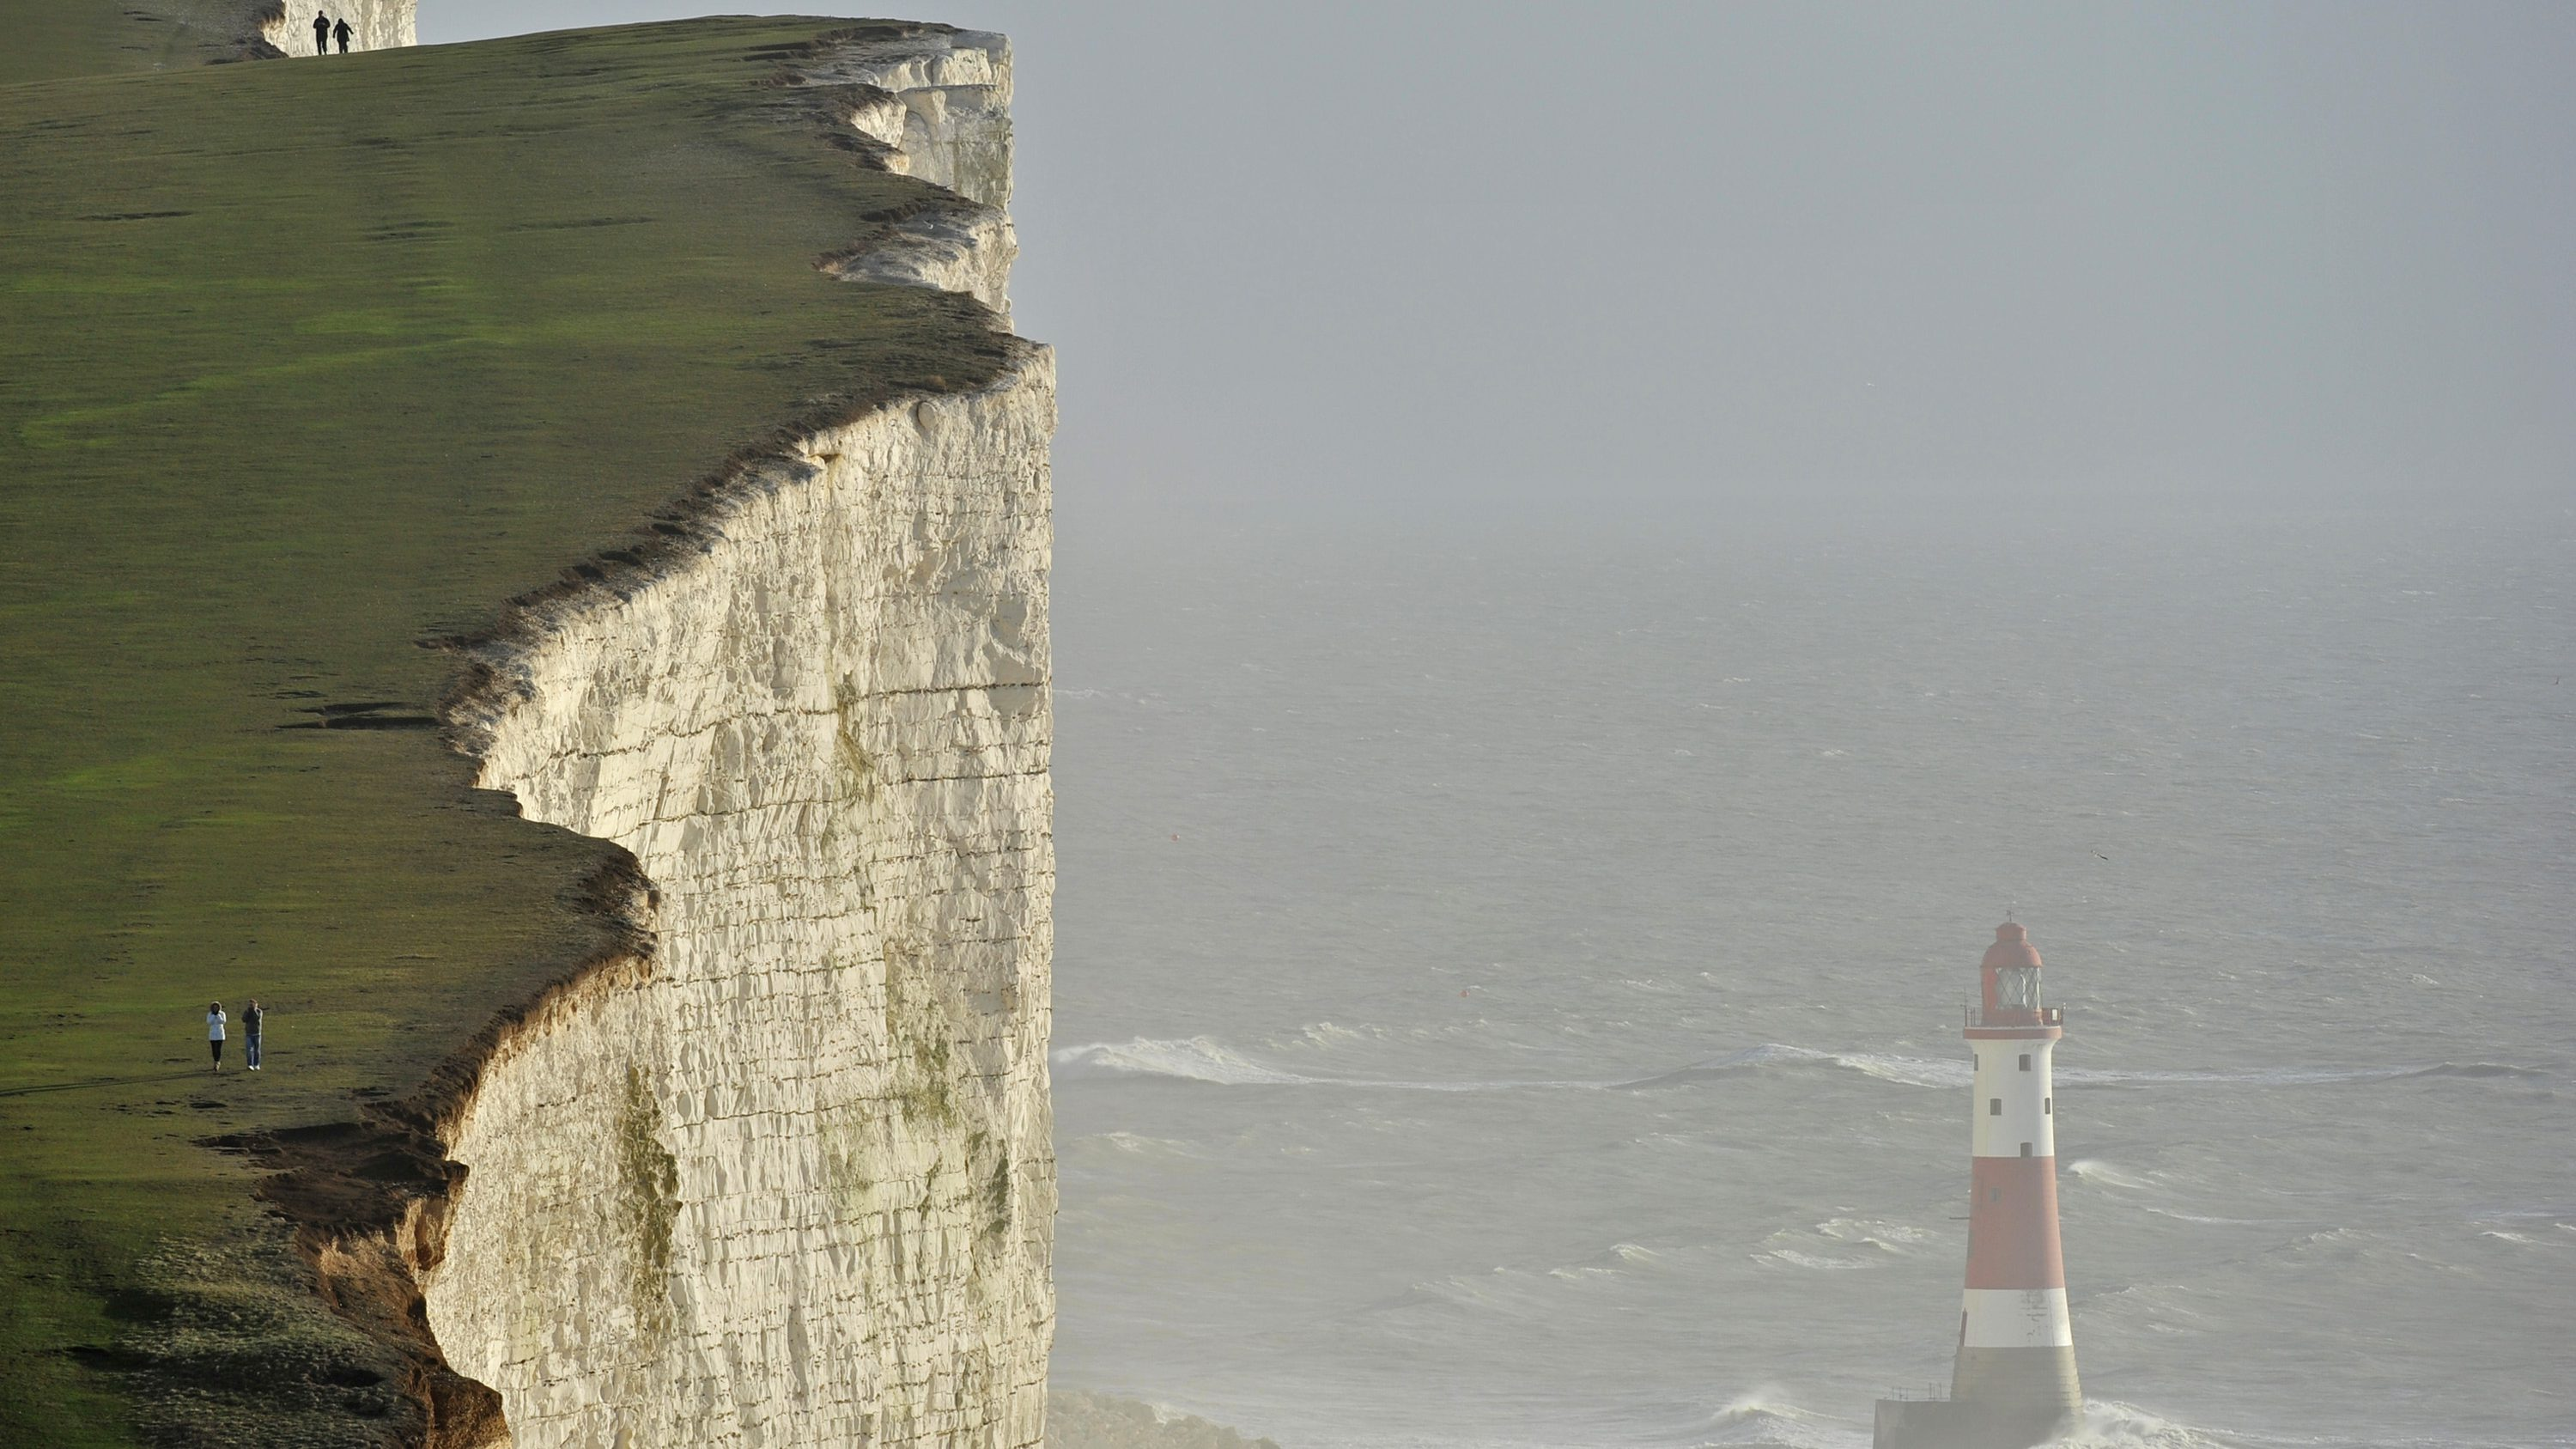 Walkers look out over Beachy Head lighthouse and heavy seas in the English Channel at Beachy Head in East Sussex in southern England